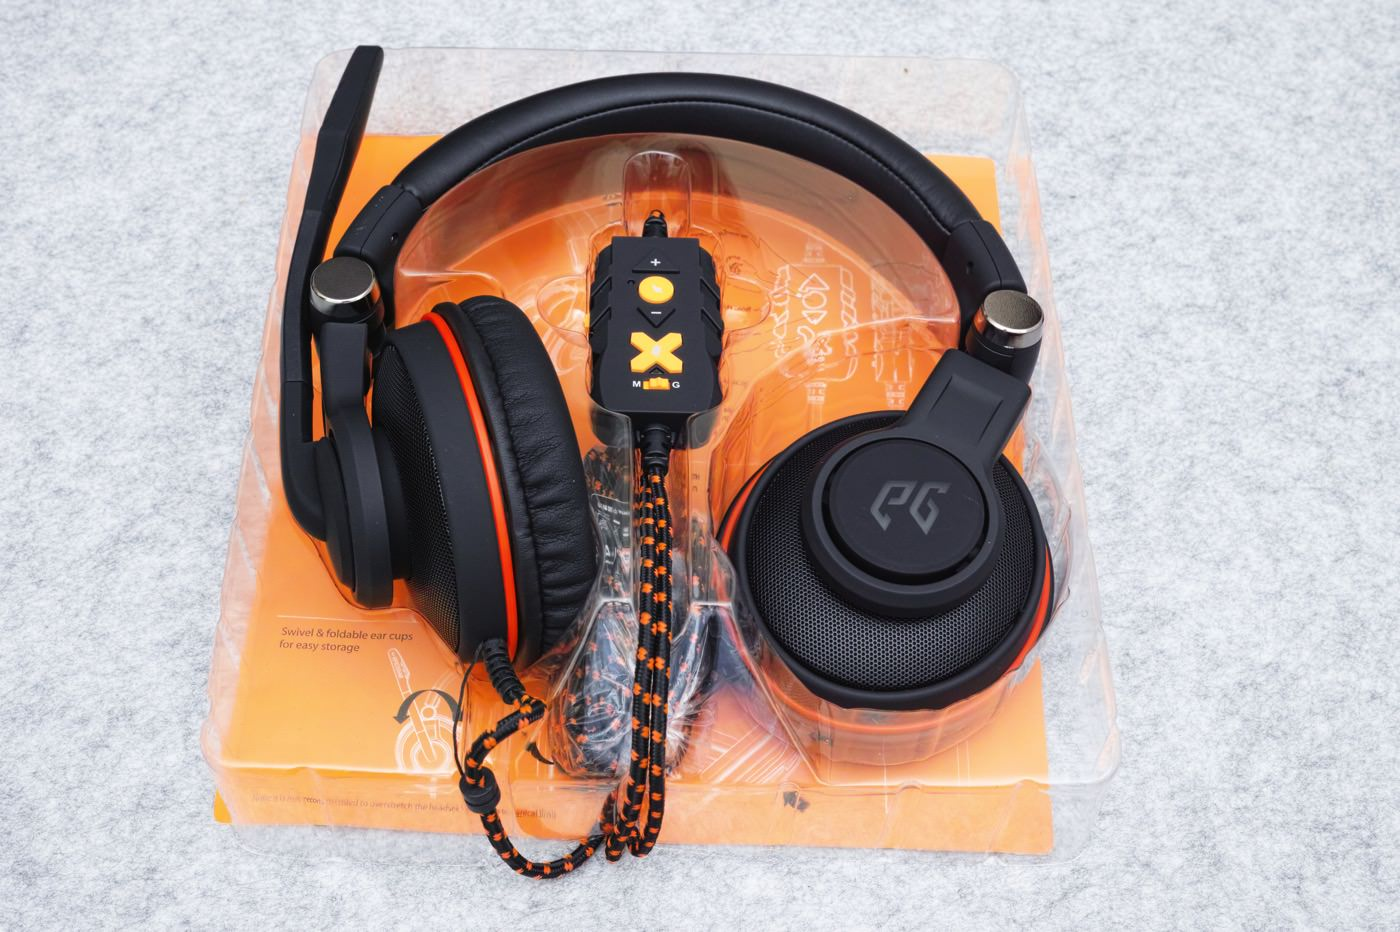 Epicgear sonorouz x gaming headset review 00002 1